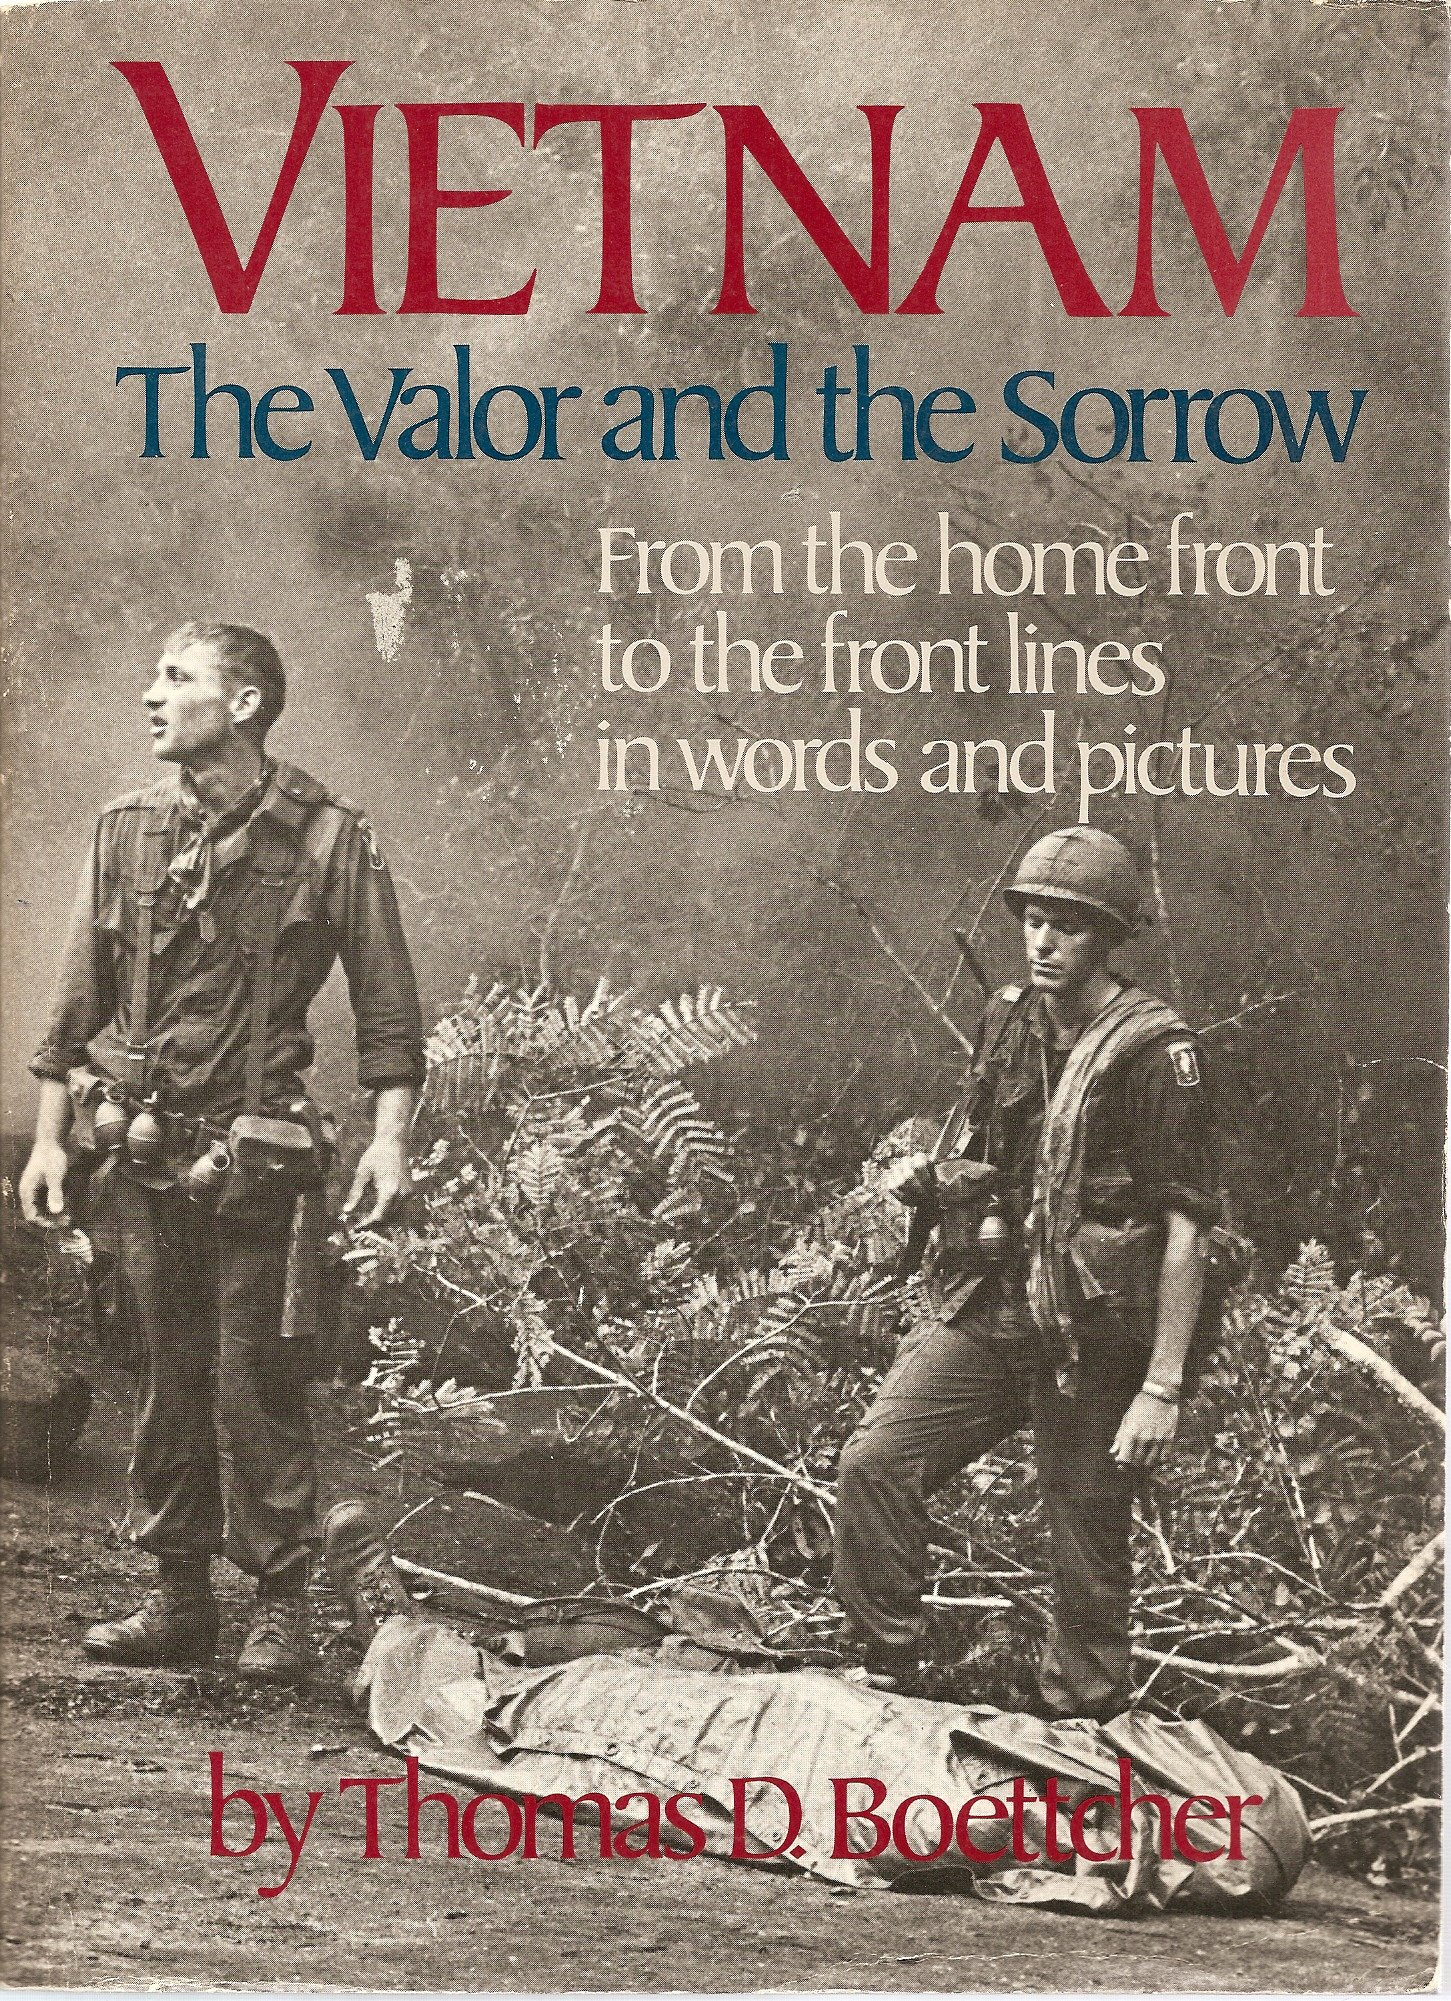 Vietnam: The Valor and the Sorrow